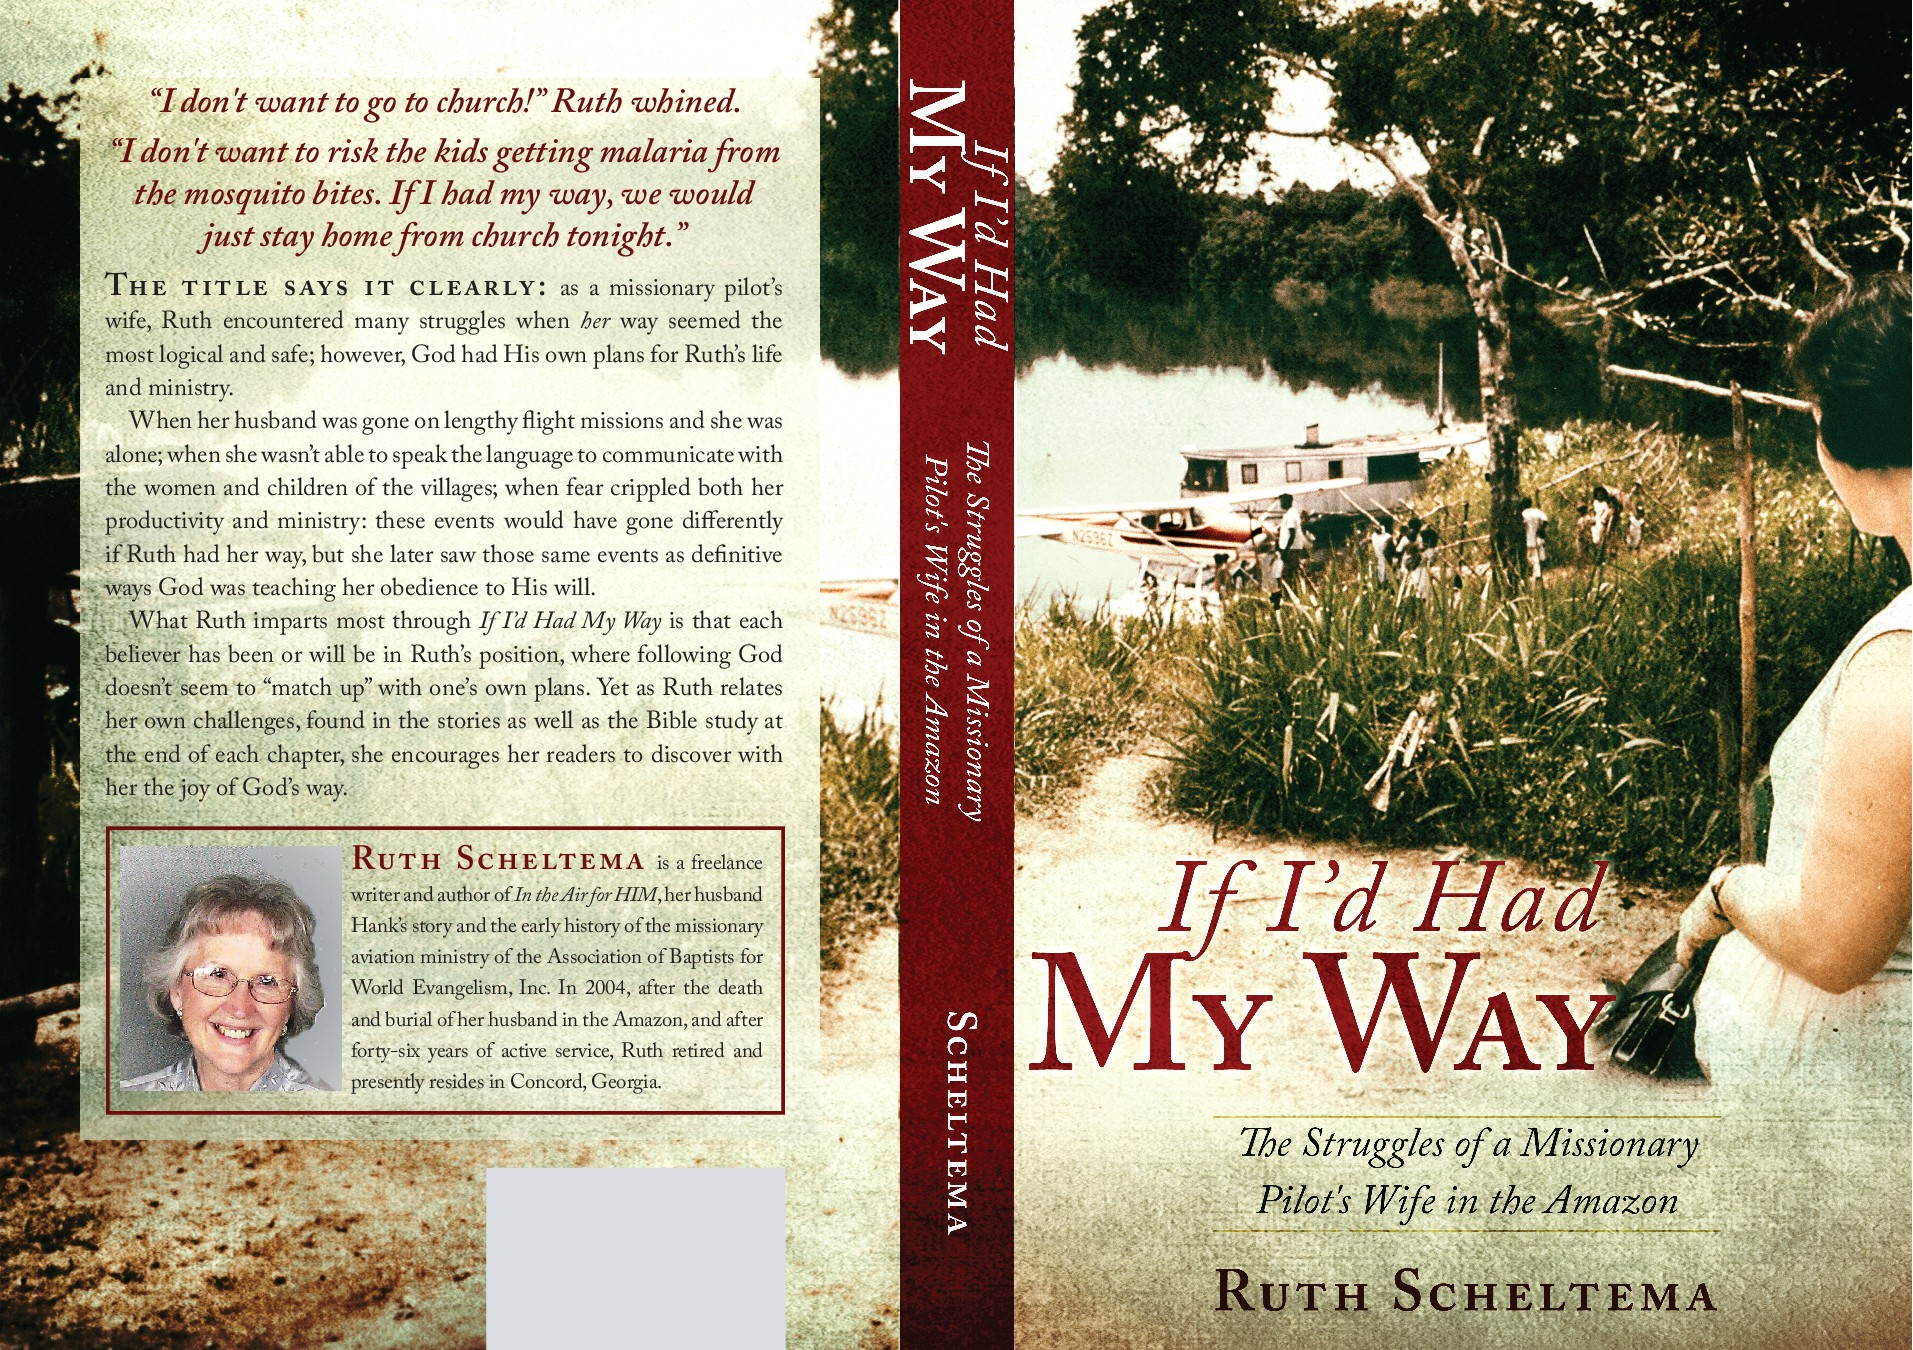 """If I'd Had My Way""  Subtitle:  The struggles of a missionary pilot's wife in the Amazon"